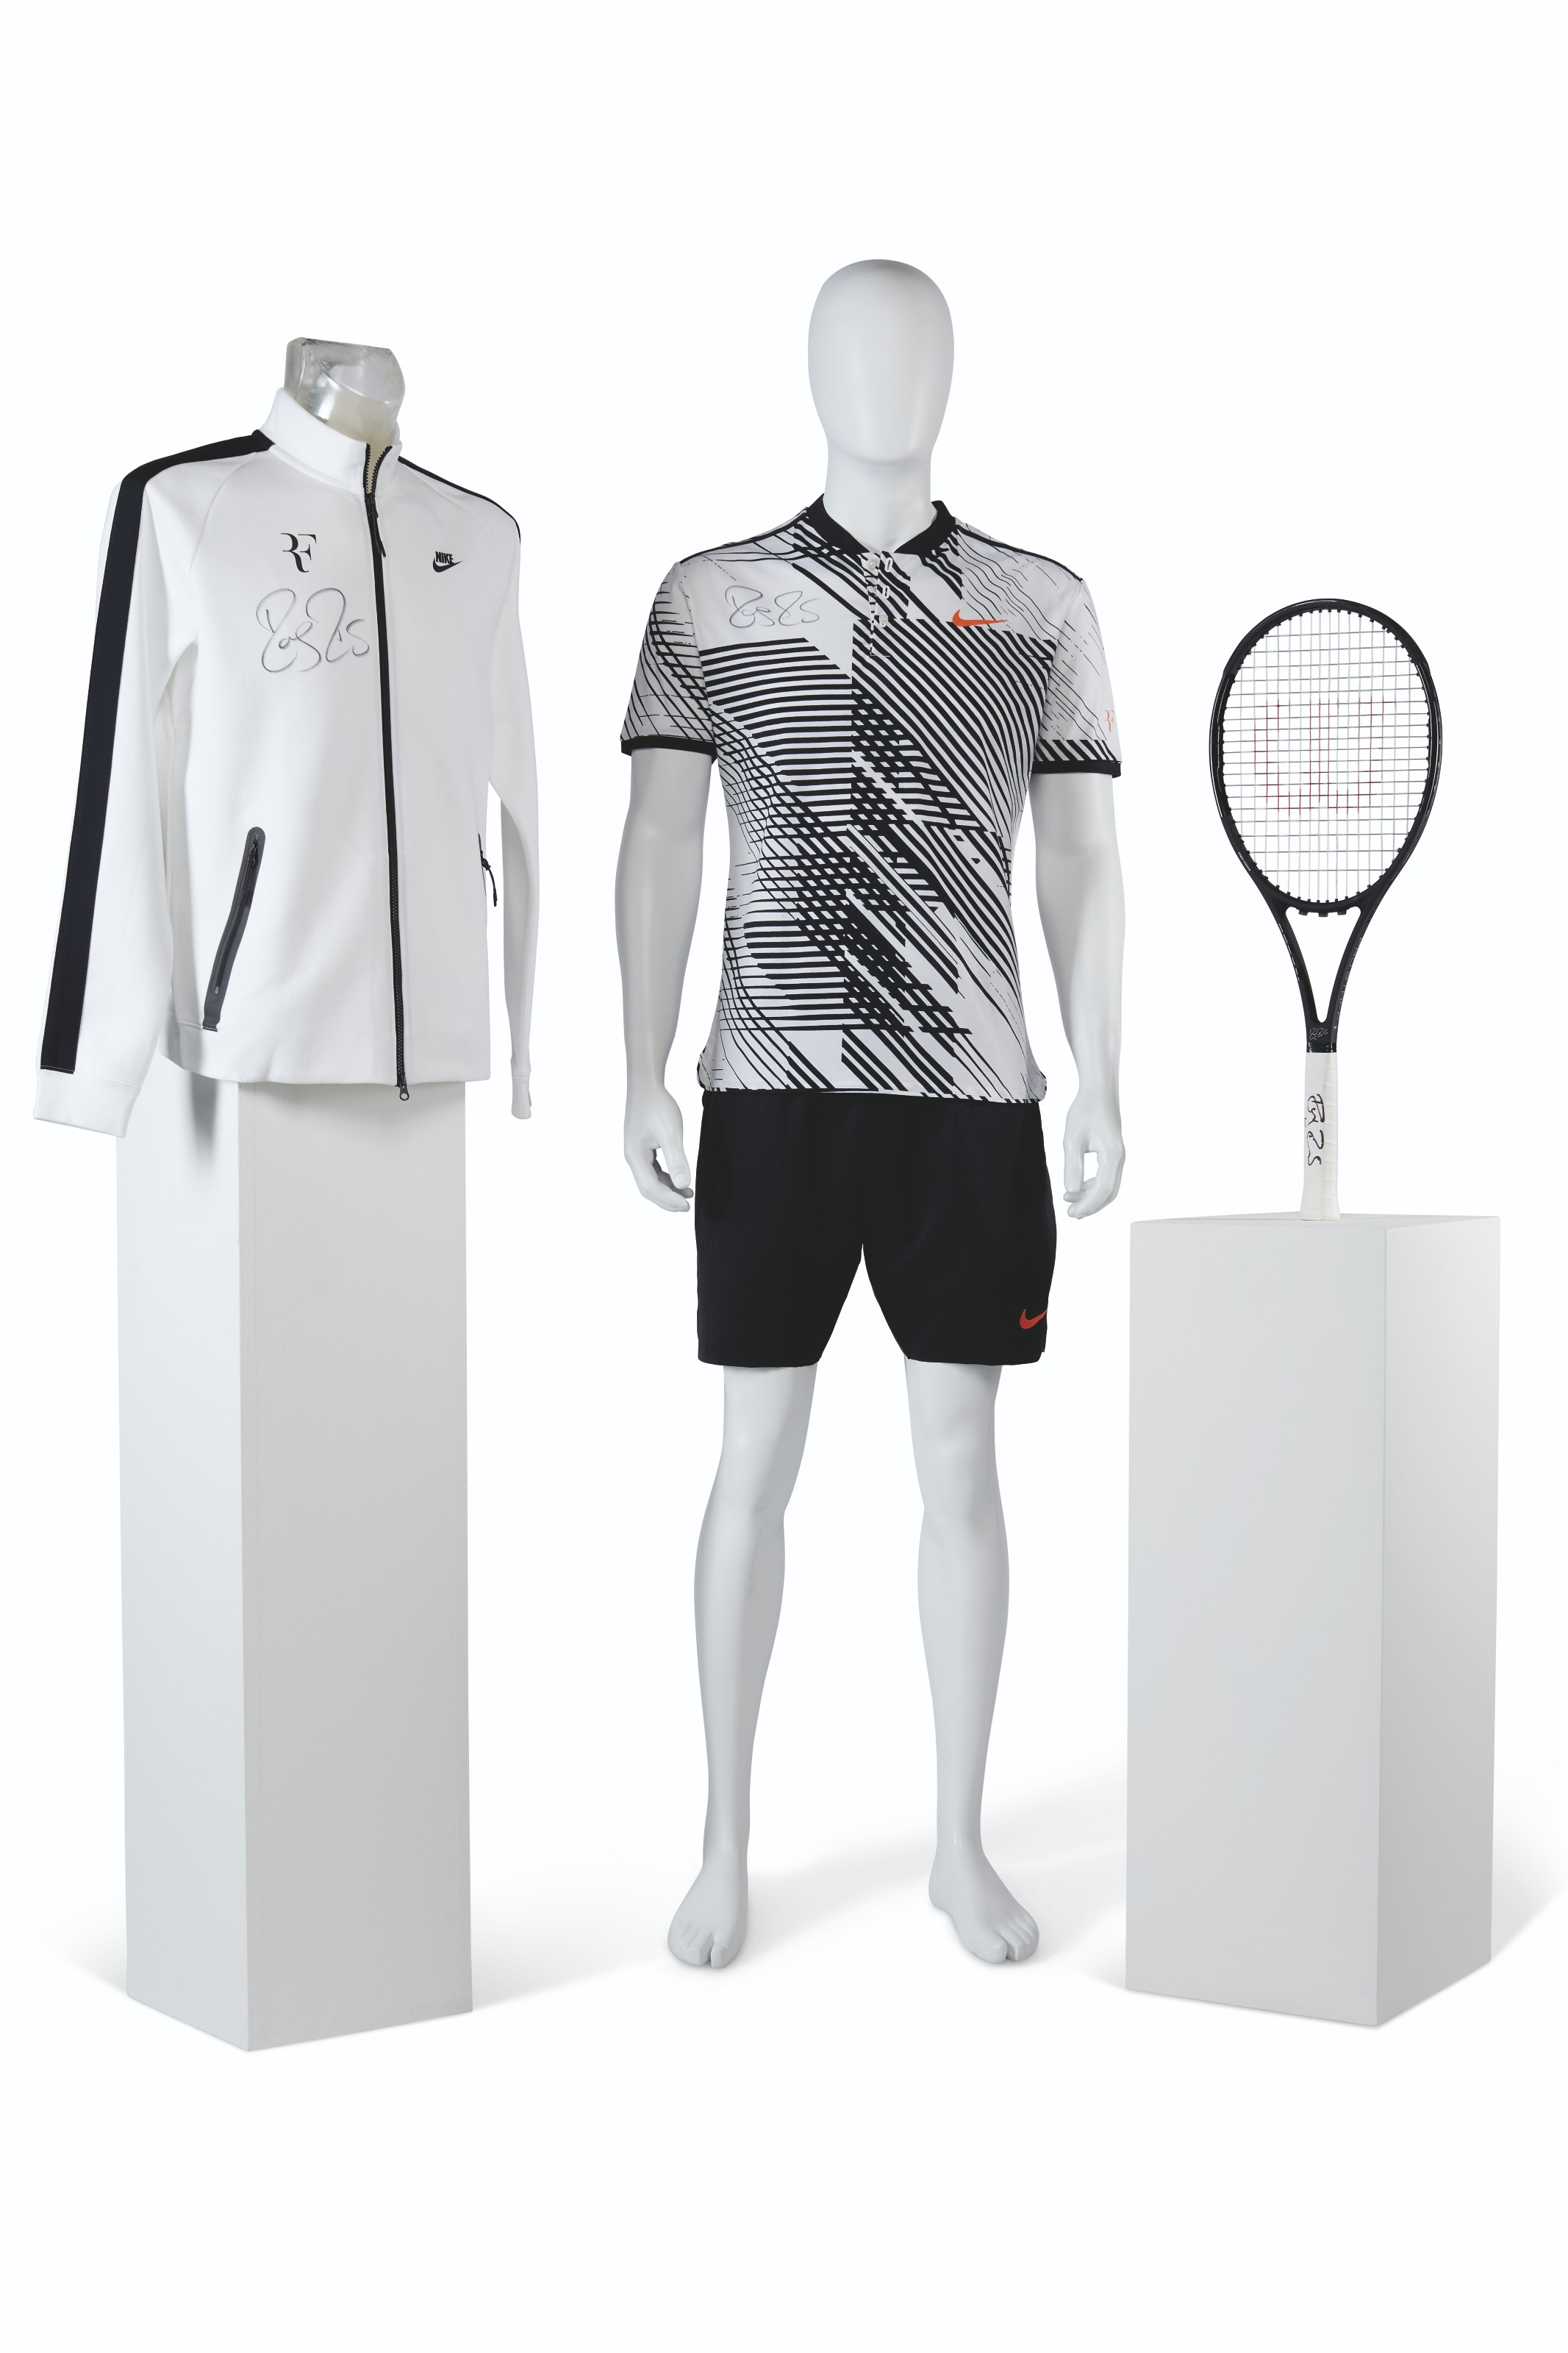 ROGER FEDERER'S CHAMPION OUTFIT AND RACKET